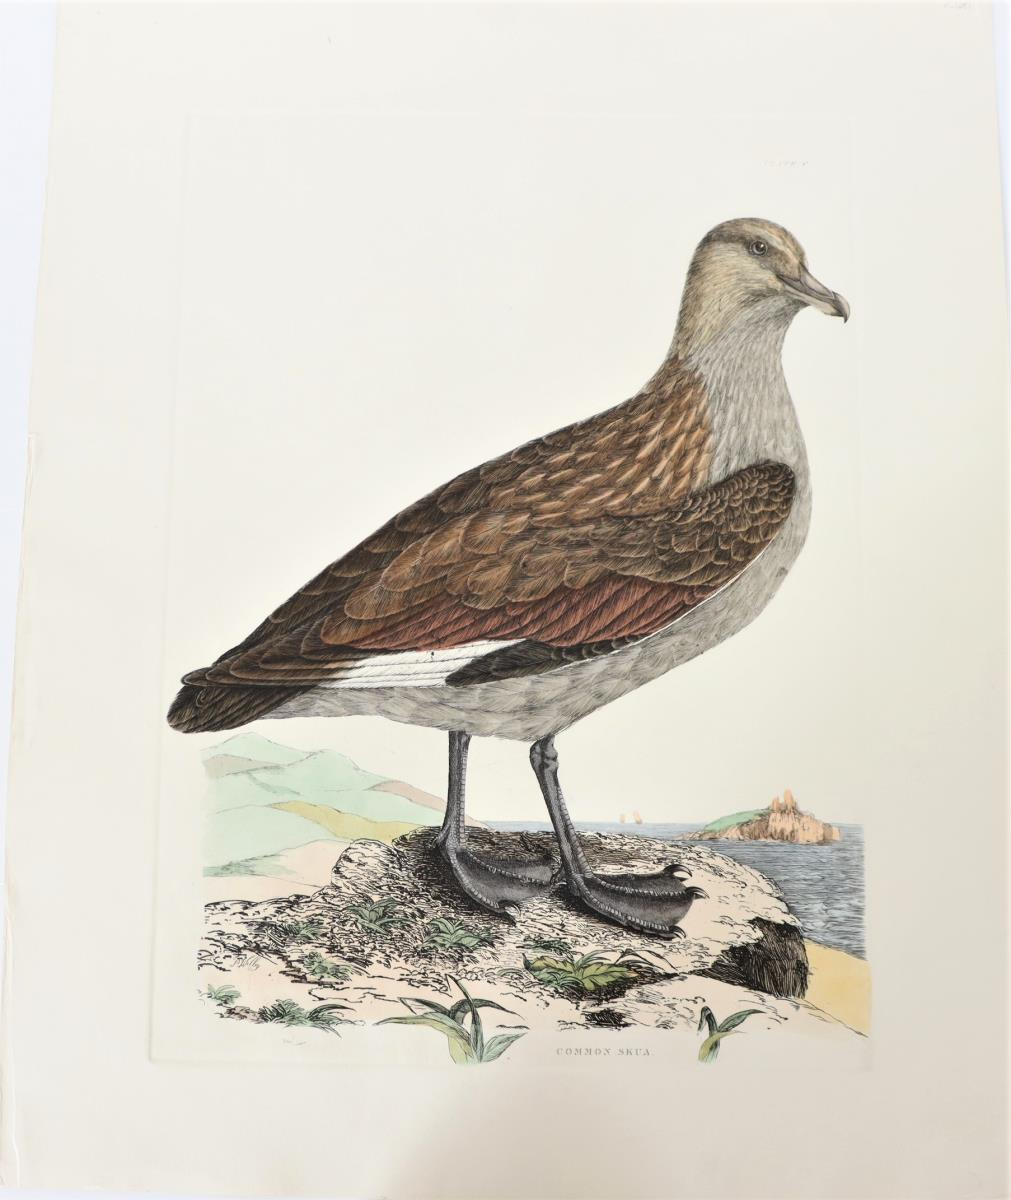 P J Selby, Hand-Colored Engraving, Common Skua